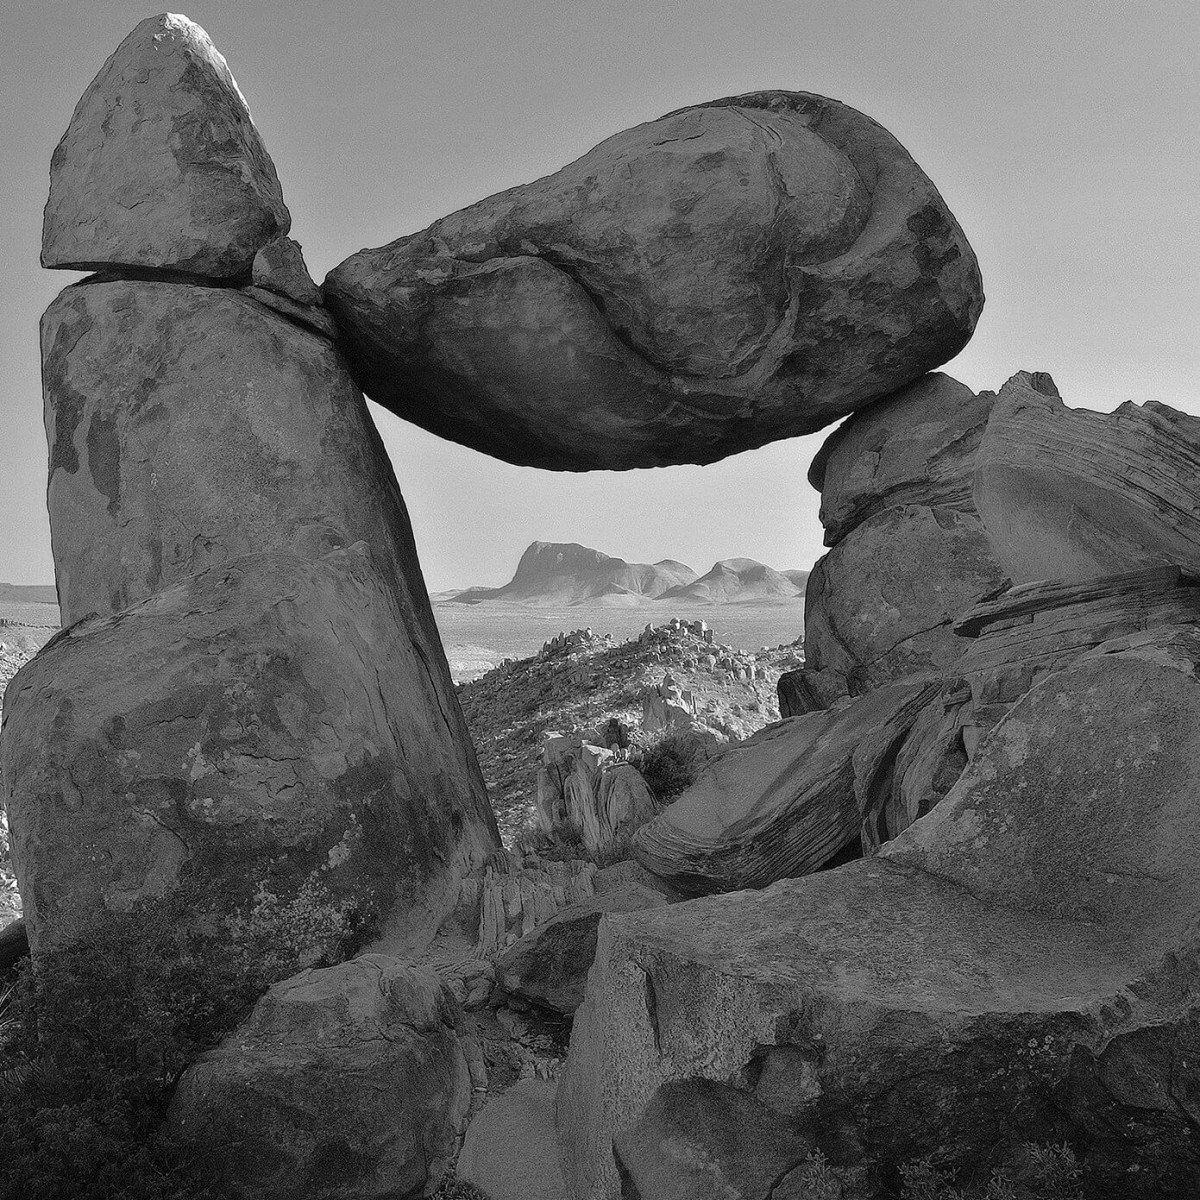 Mark Burns photo of Balanced Rock at Big Bend National Park